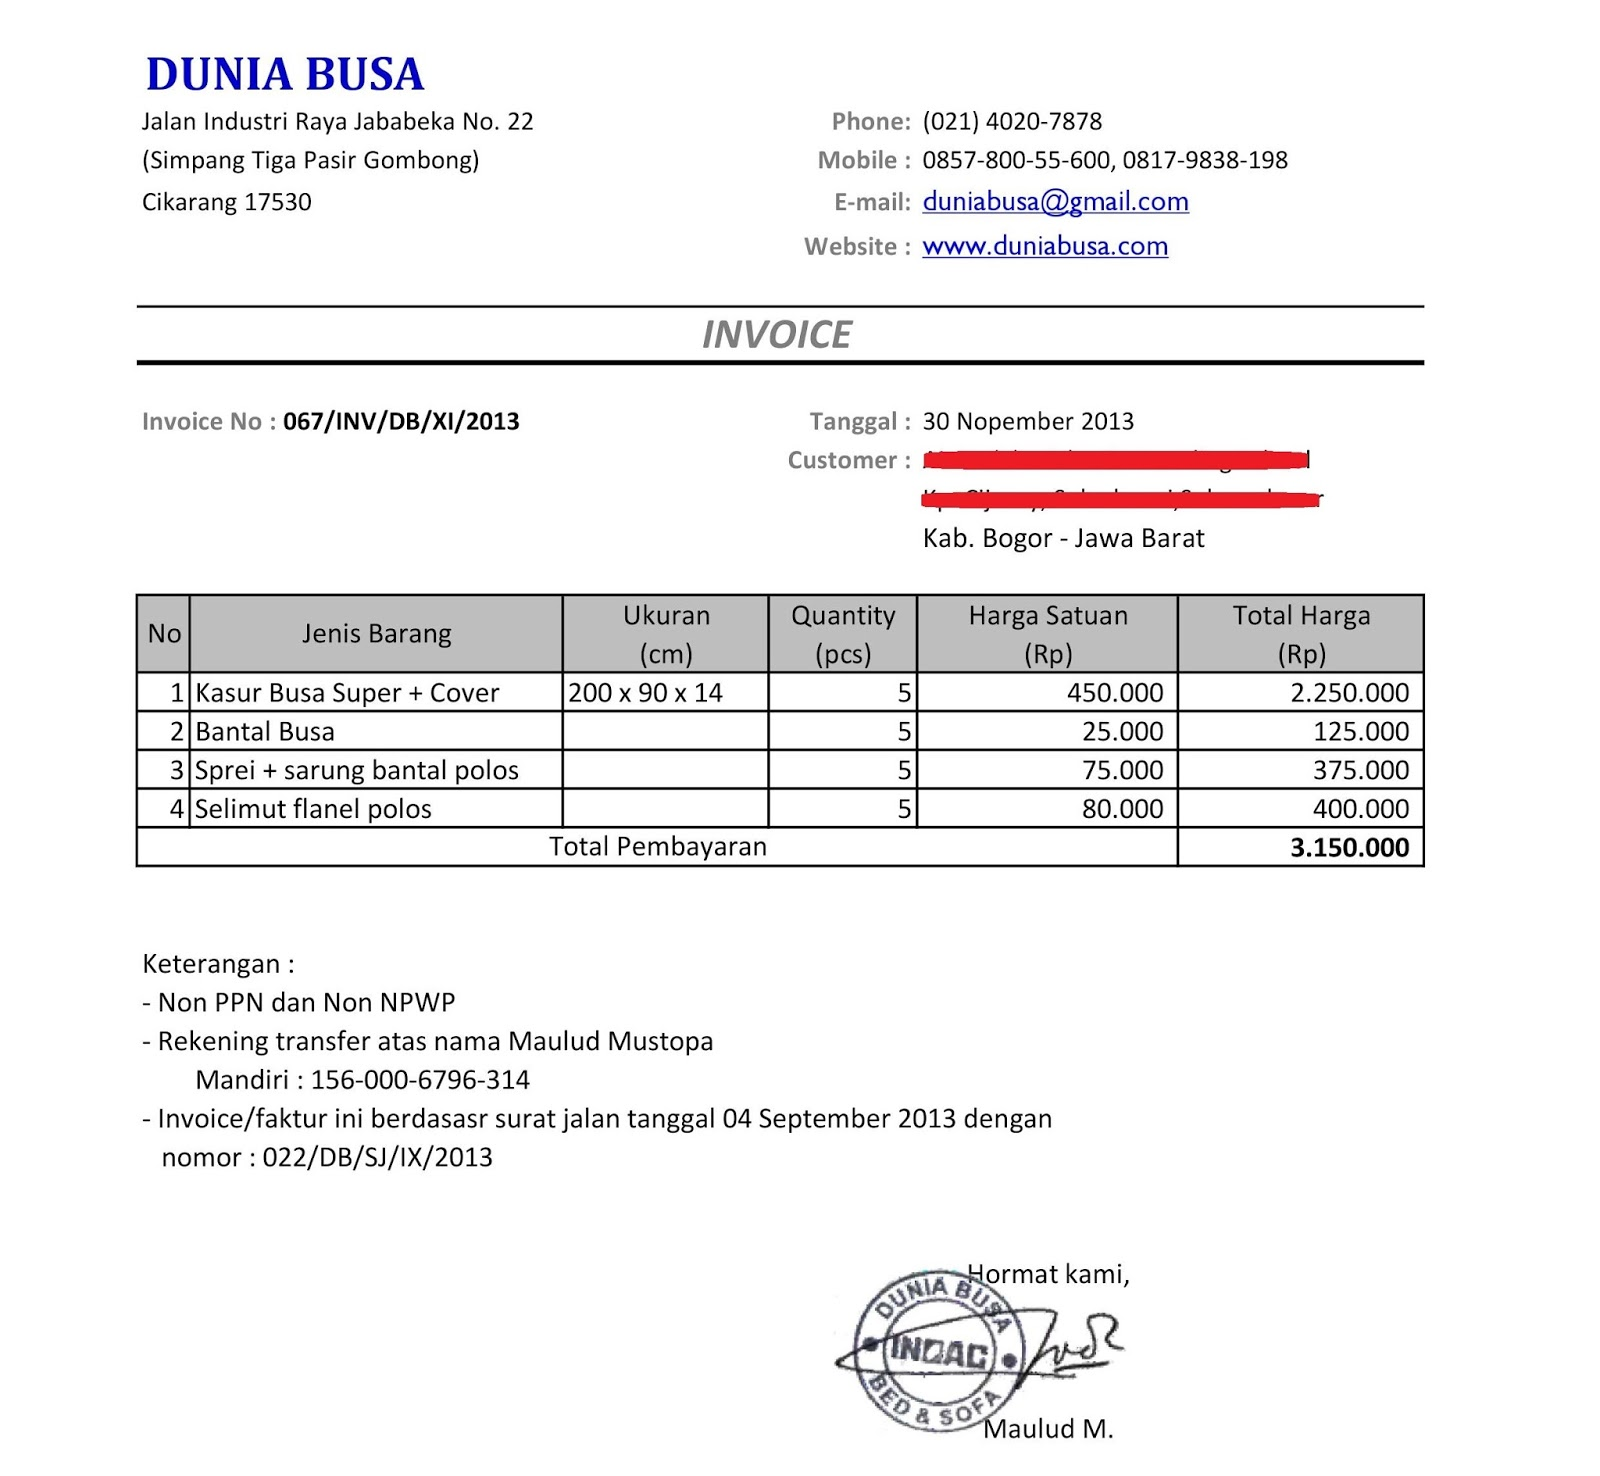 Ultrablogus  Nice Free Invoice Online  Create Invoice Online  Invoice Template  With Magnificent Contoh Format Invoice Atau Surat Tagihan  Brankas Arsip  Free Invoice Online With Cute Quickbooks Invoice Templates Free Download Also How To Set Up Invoice In Addition Original Invoice Required And Jeep Cherokee Invoice Price As Well As Excel Template Invoice Additionally Free Invoice Download From Sklepco With Ultrablogus  Magnificent Free Invoice Online  Create Invoice Online  Invoice Template  With Cute Contoh Format Invoice Atau Surat Tagihan  Brankas Arsip  Free Invoice Online And Nice Quickbooks Invoice Templates Free Download Also How To Set Up Invoice In Addition Original Invoice Required From Sklepco